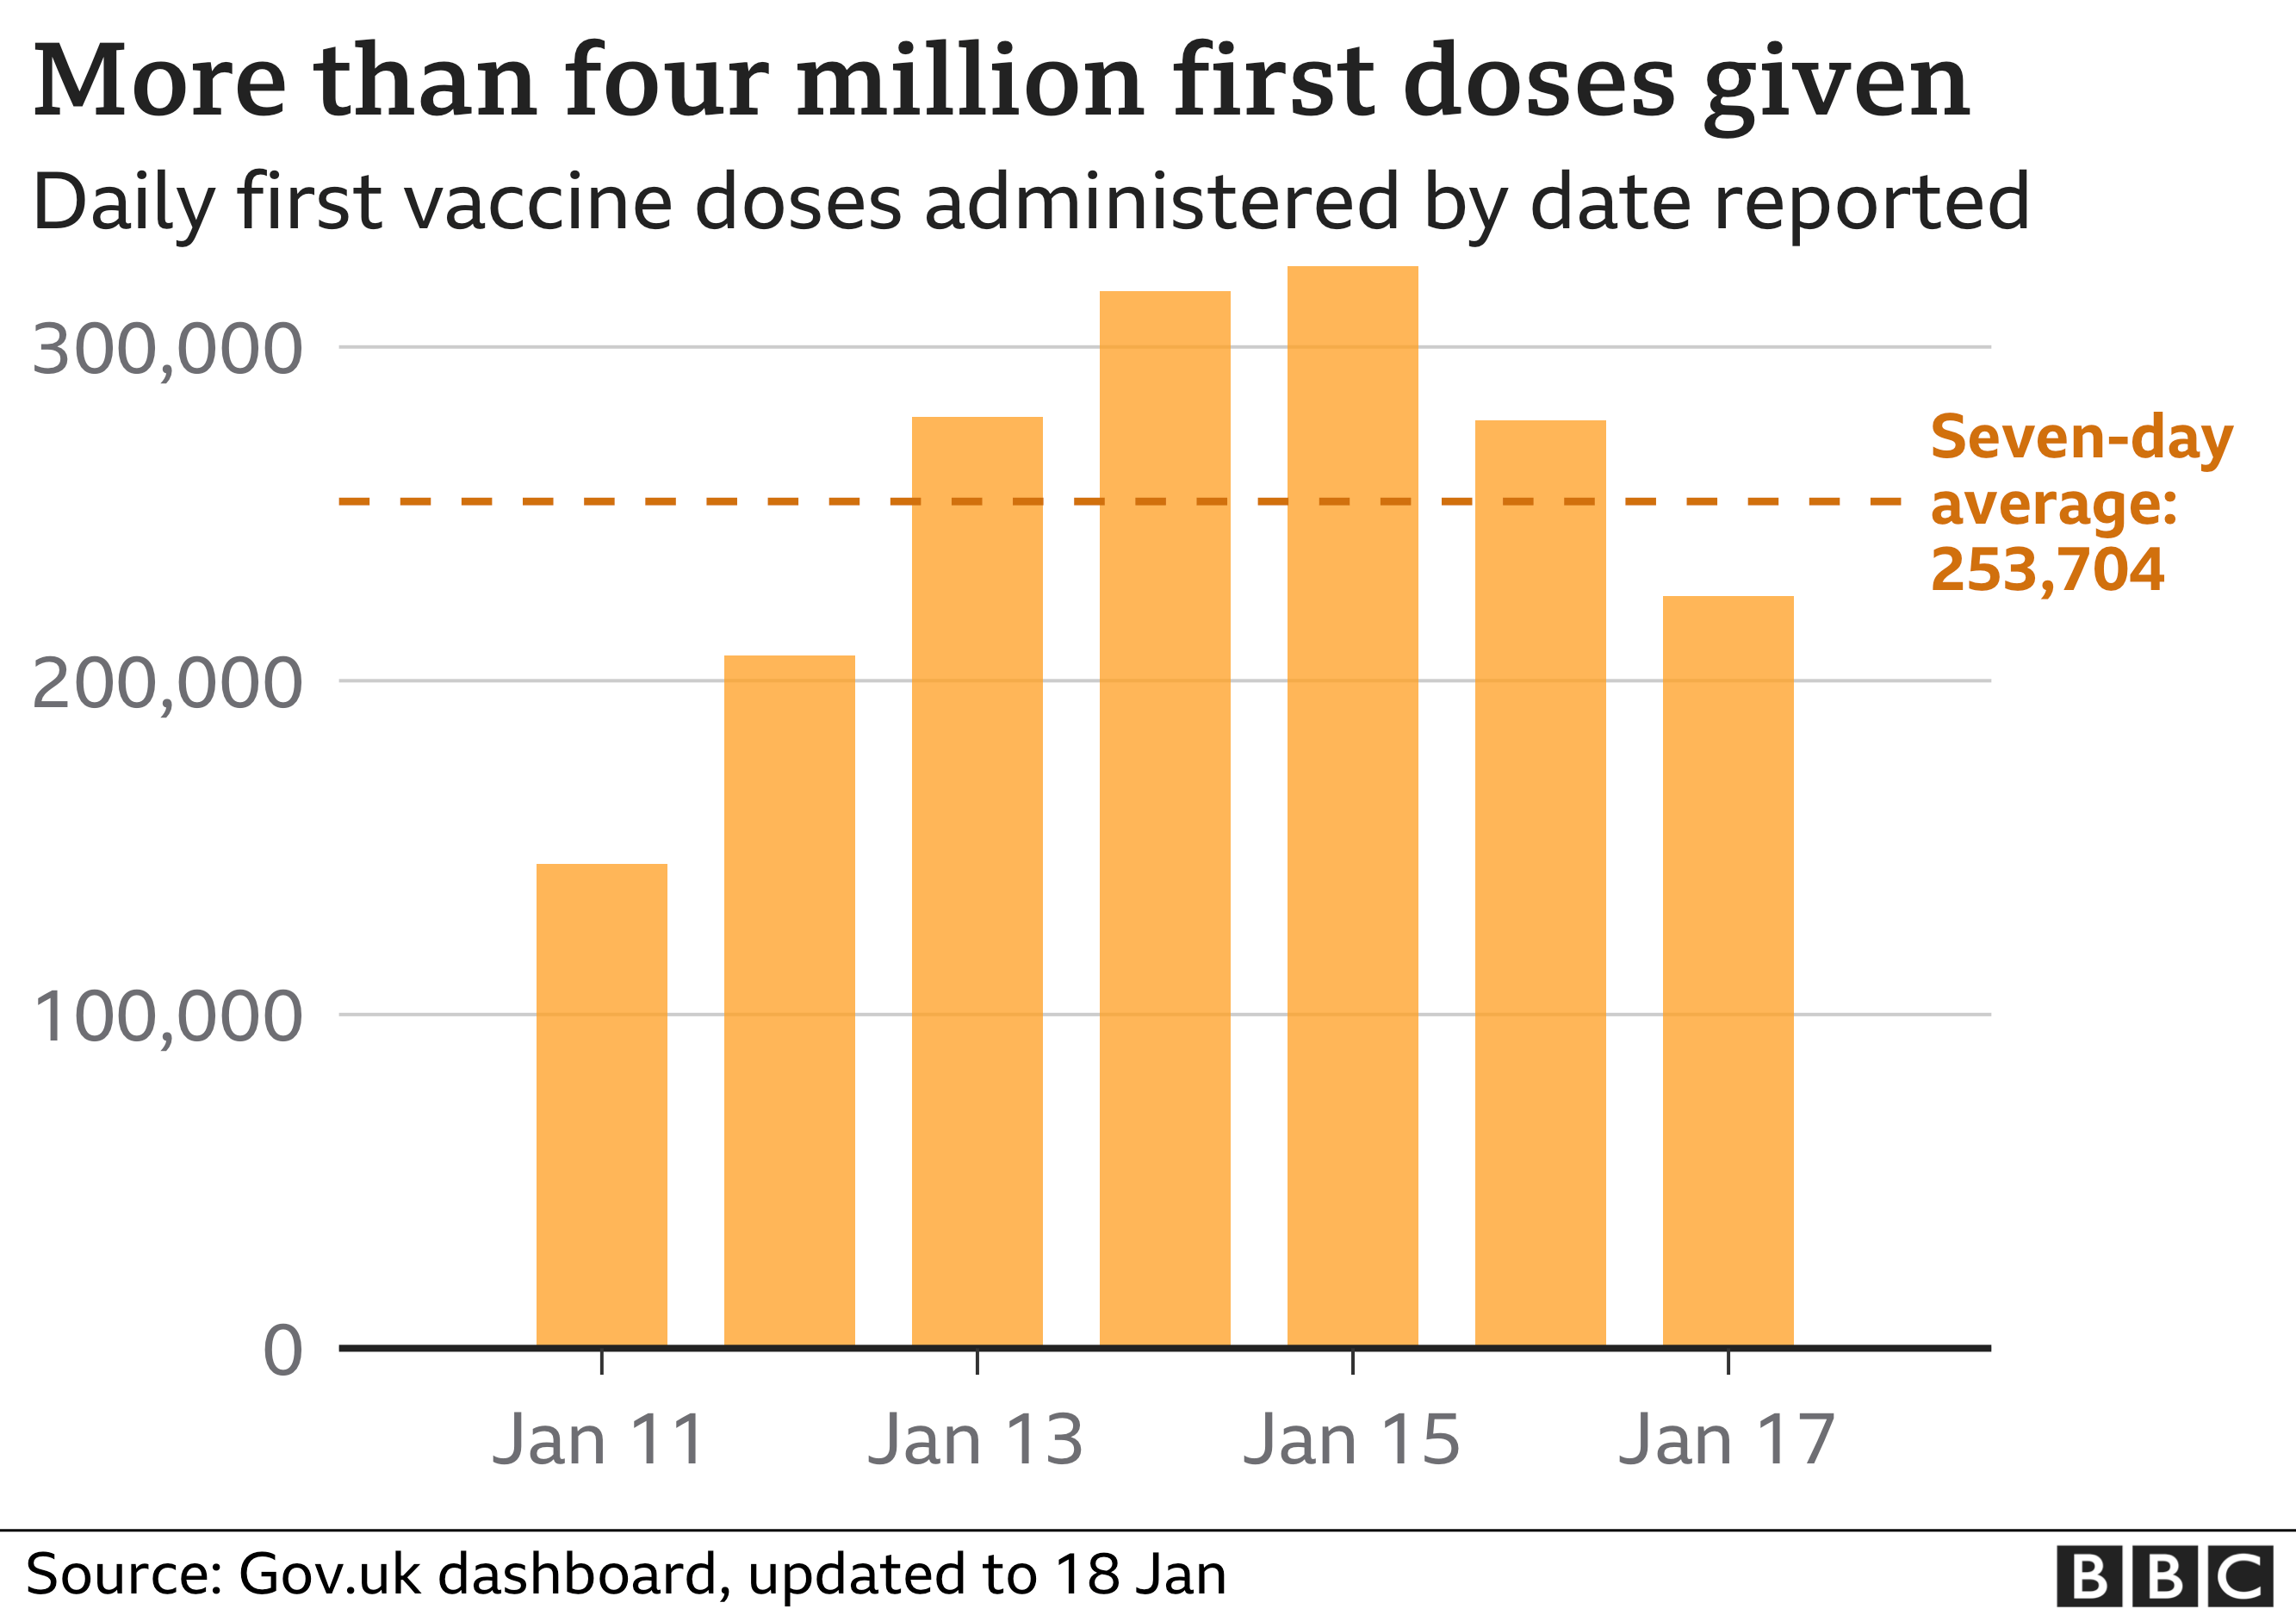 Chart showing daily vaccination figures for the UK